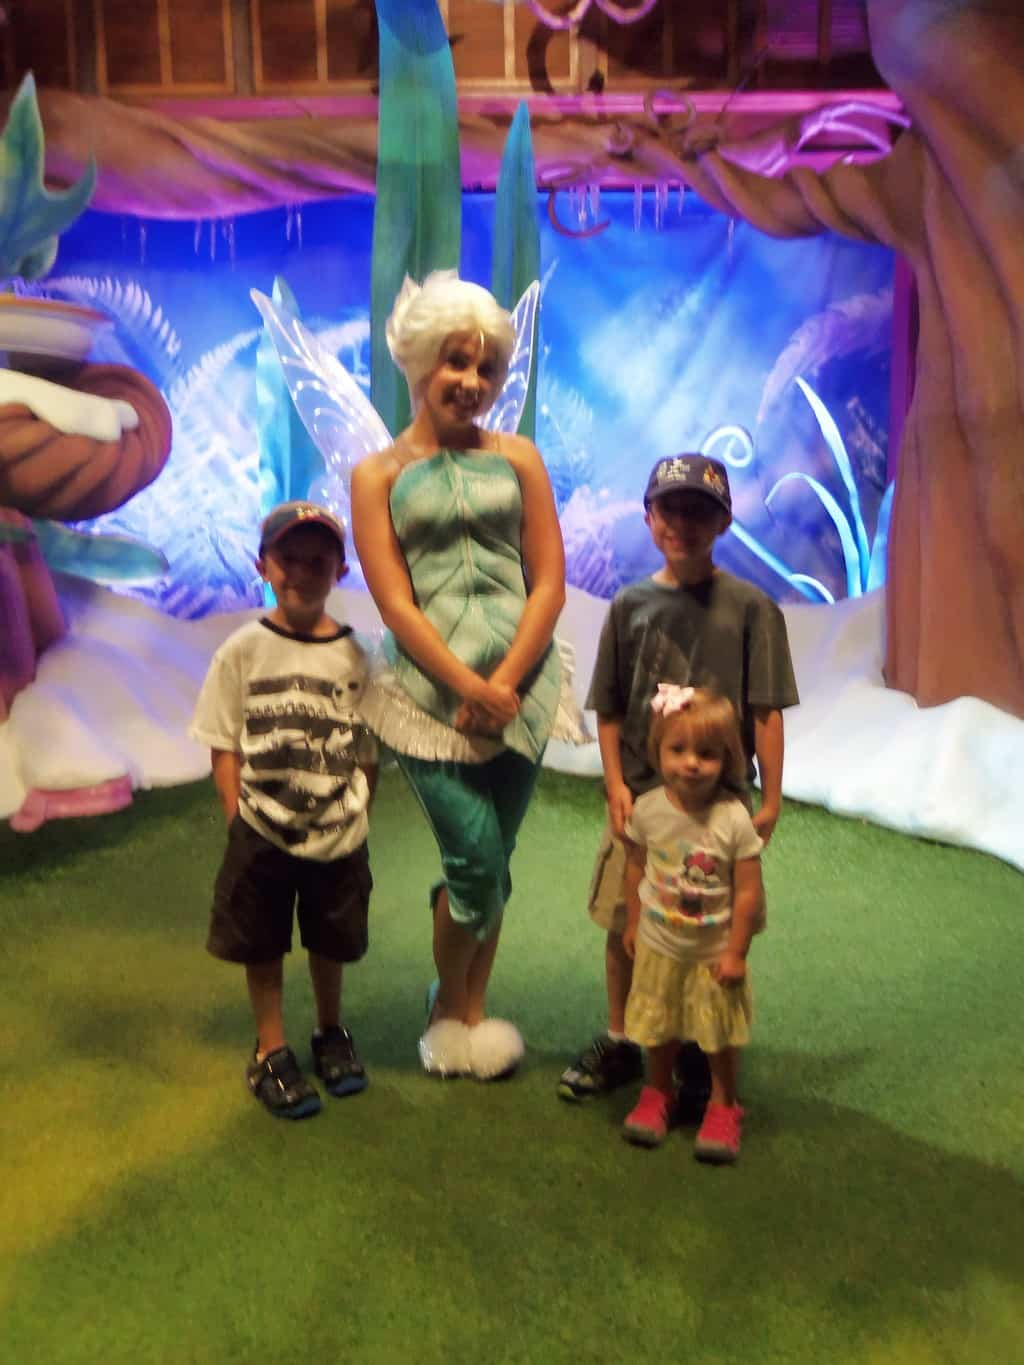 Periwinkle was able to convince the boys to join in the fun.